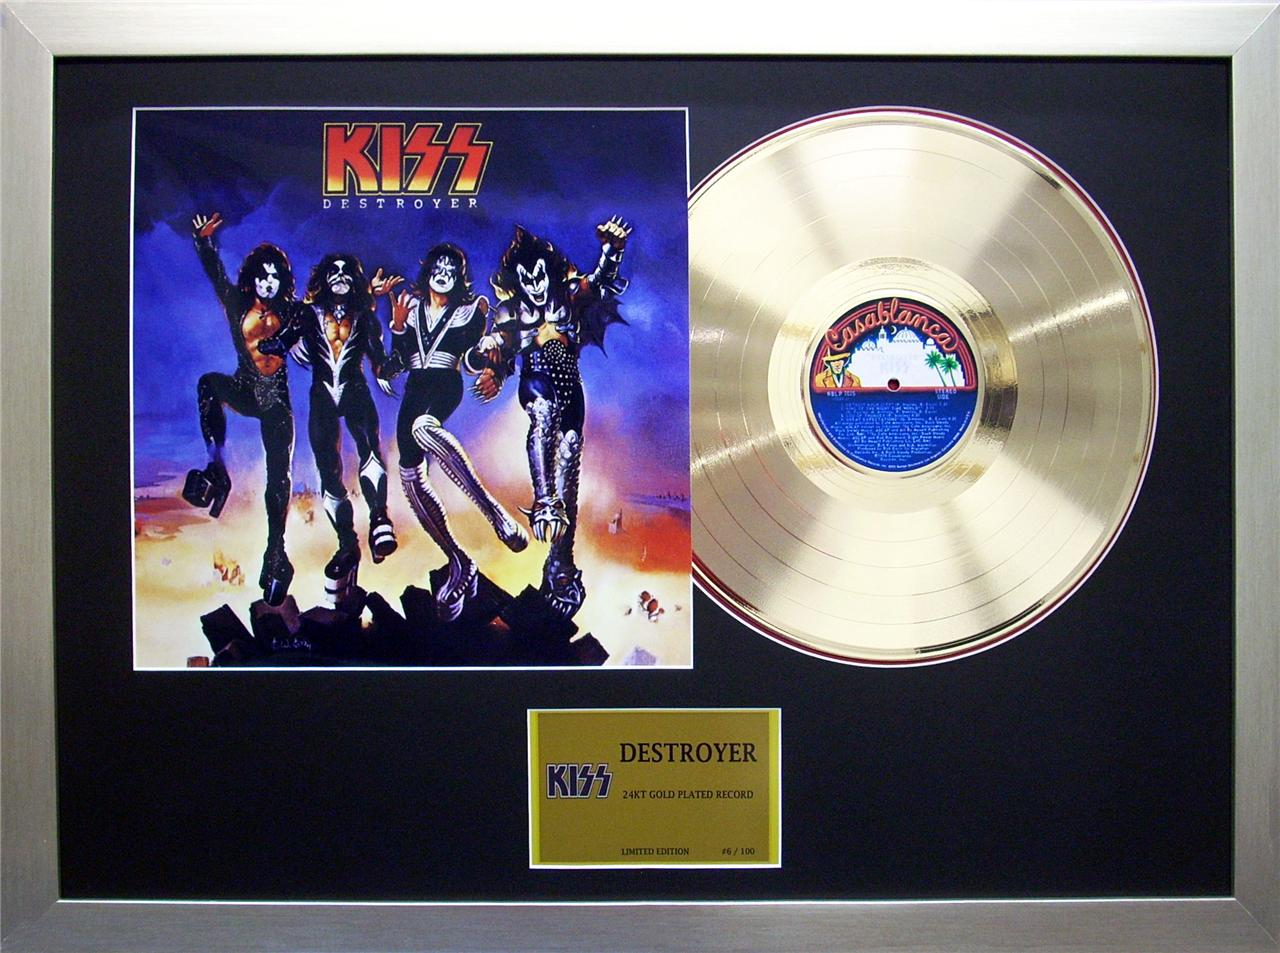 KISS-Destroyer-24KT-Gold-Plated-12-inch-Record-Framed-Memorabilia